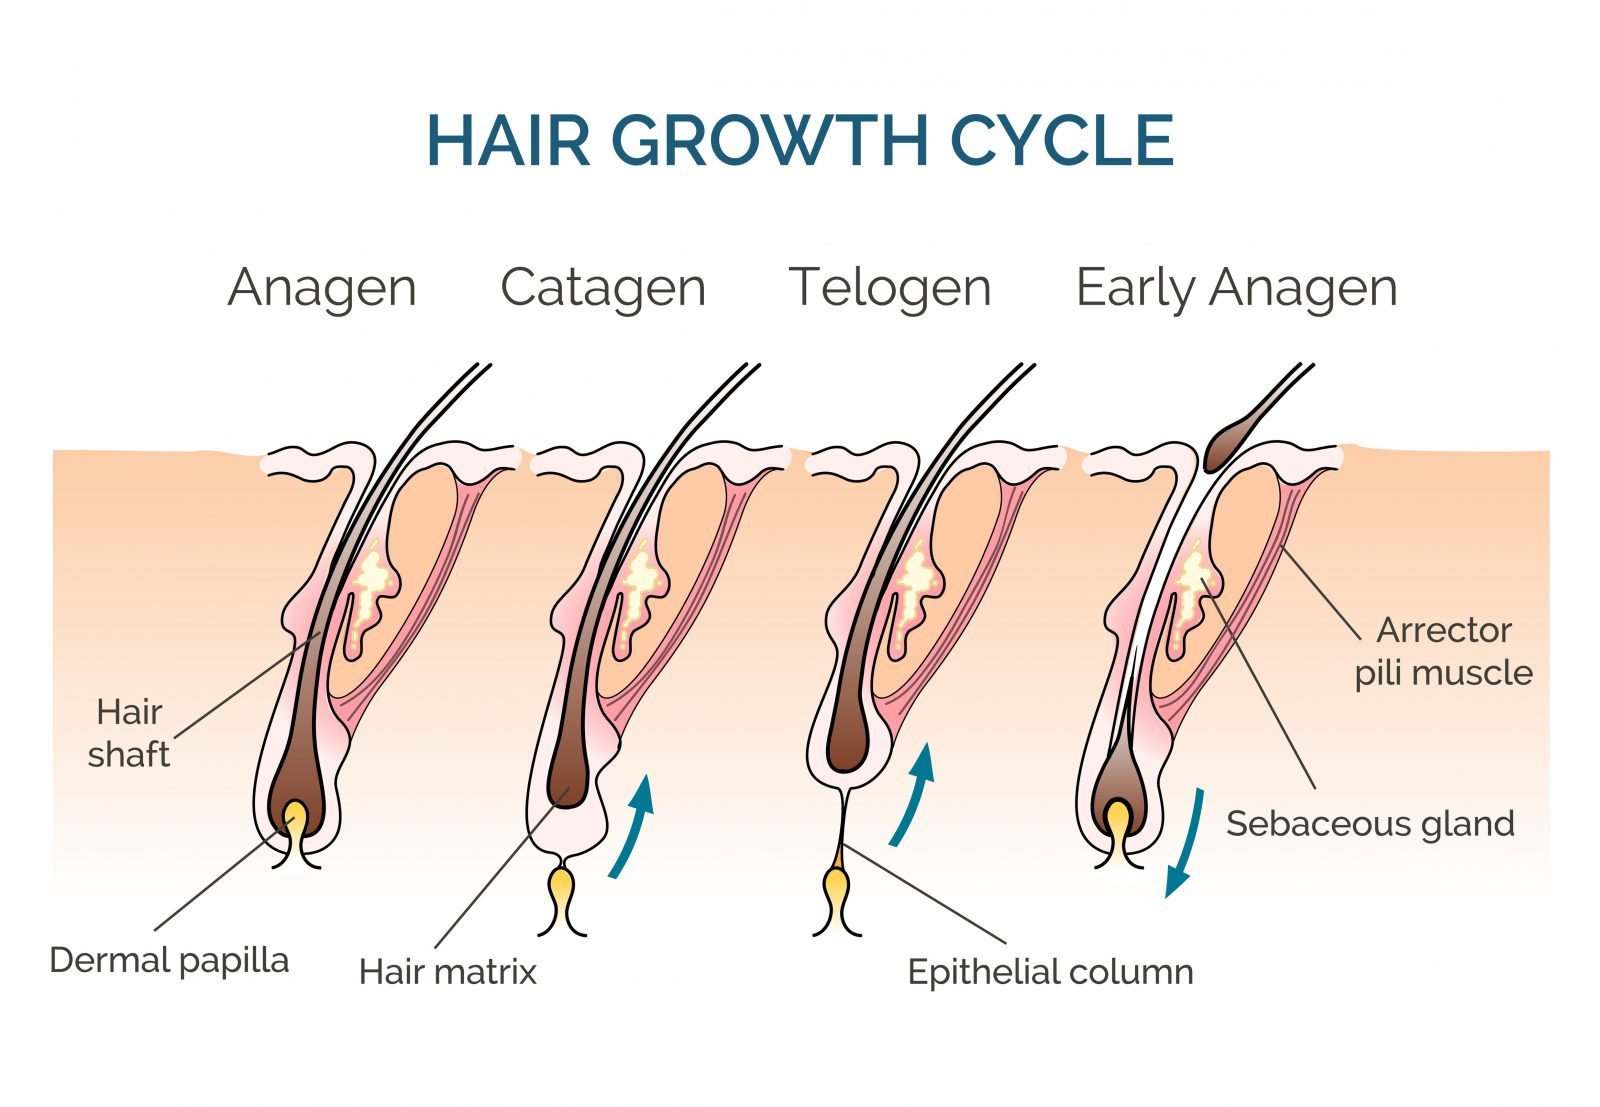 Hair Growth Cycle graphic